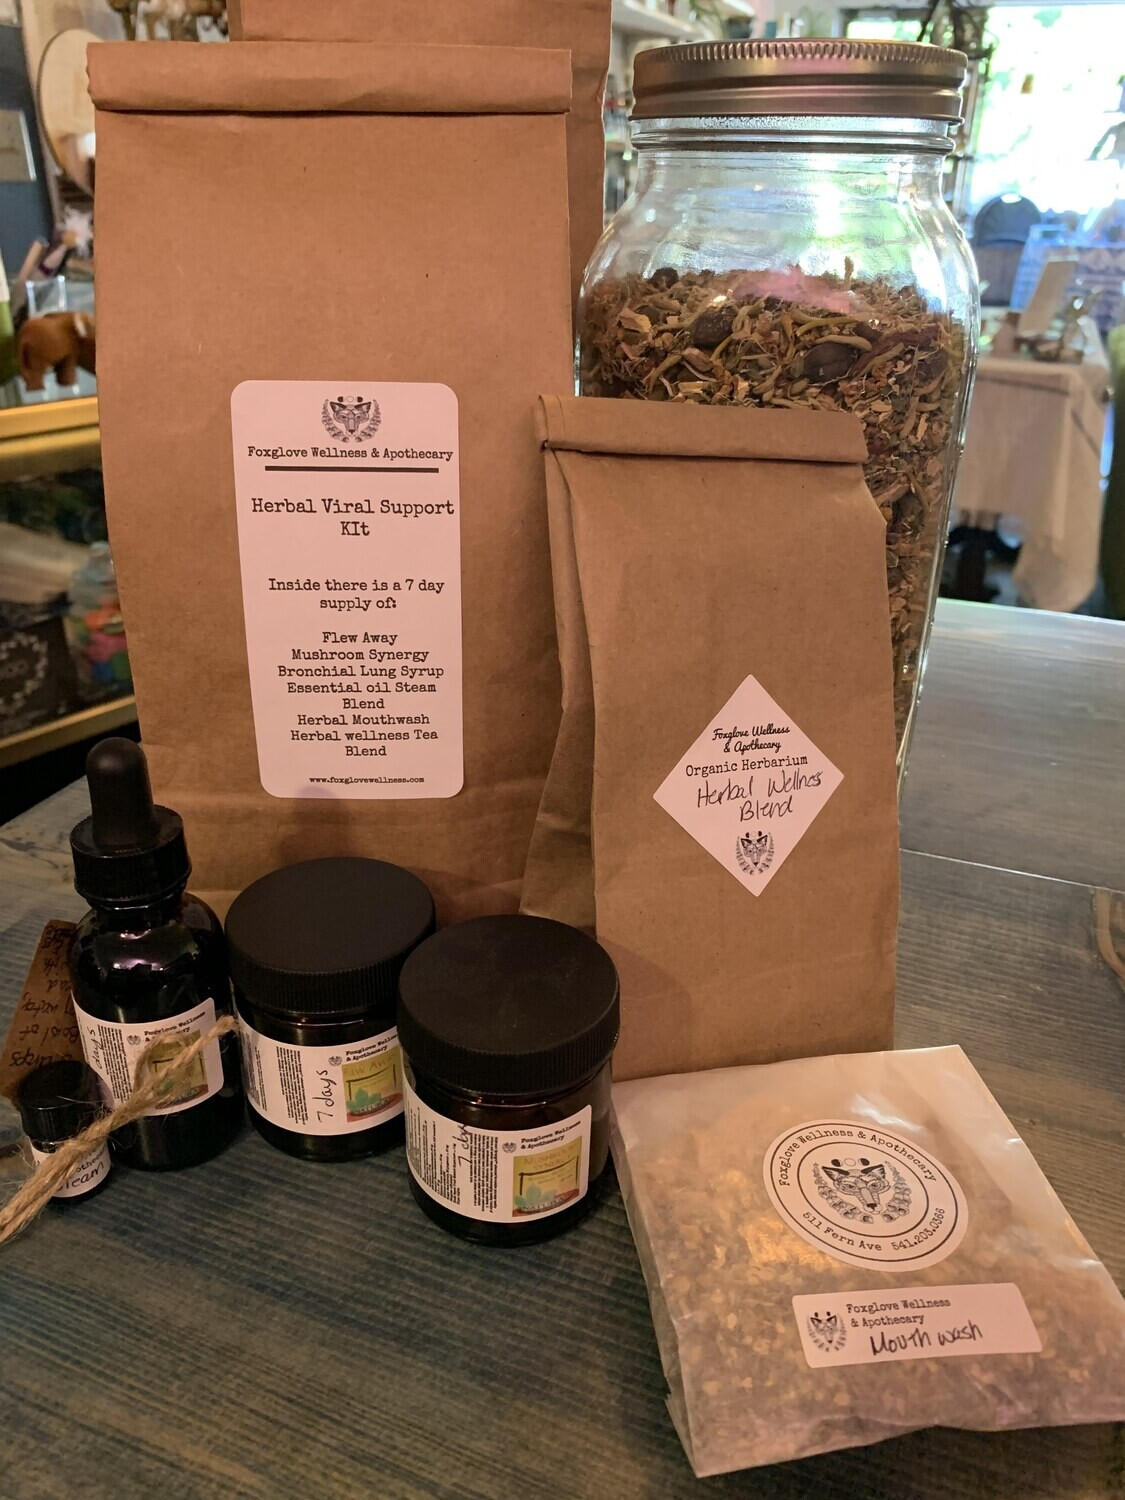 Herbal Viral Support Kit 7 Day